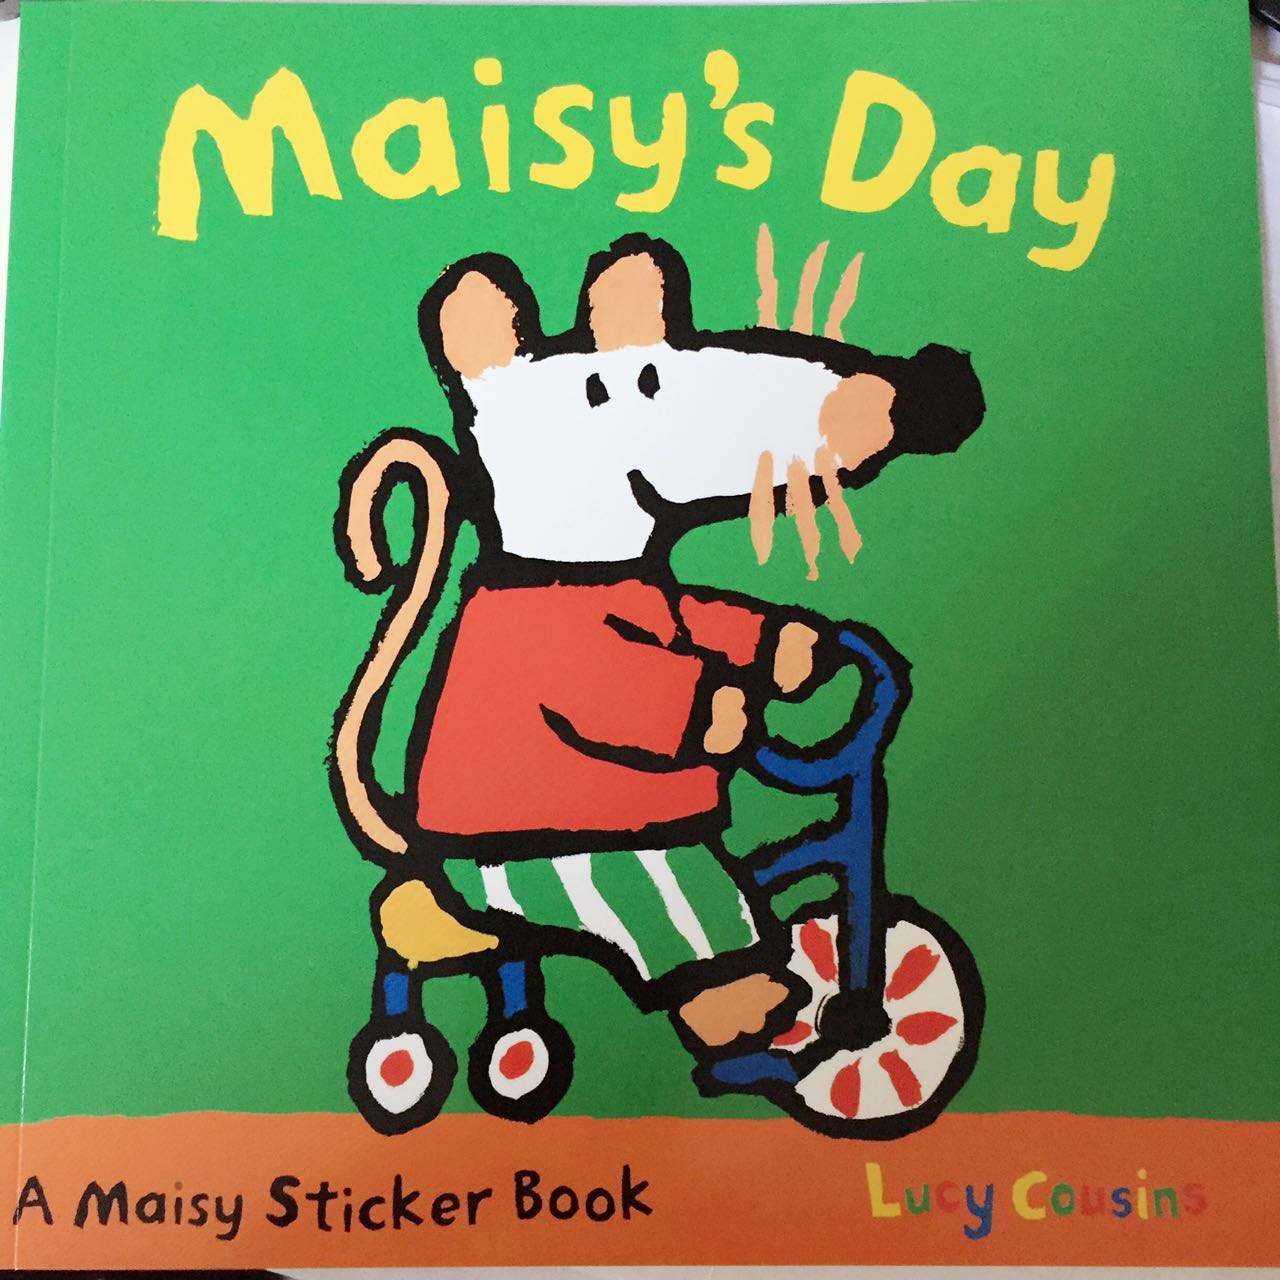 Maisy:Maisy's Day Sticker Book